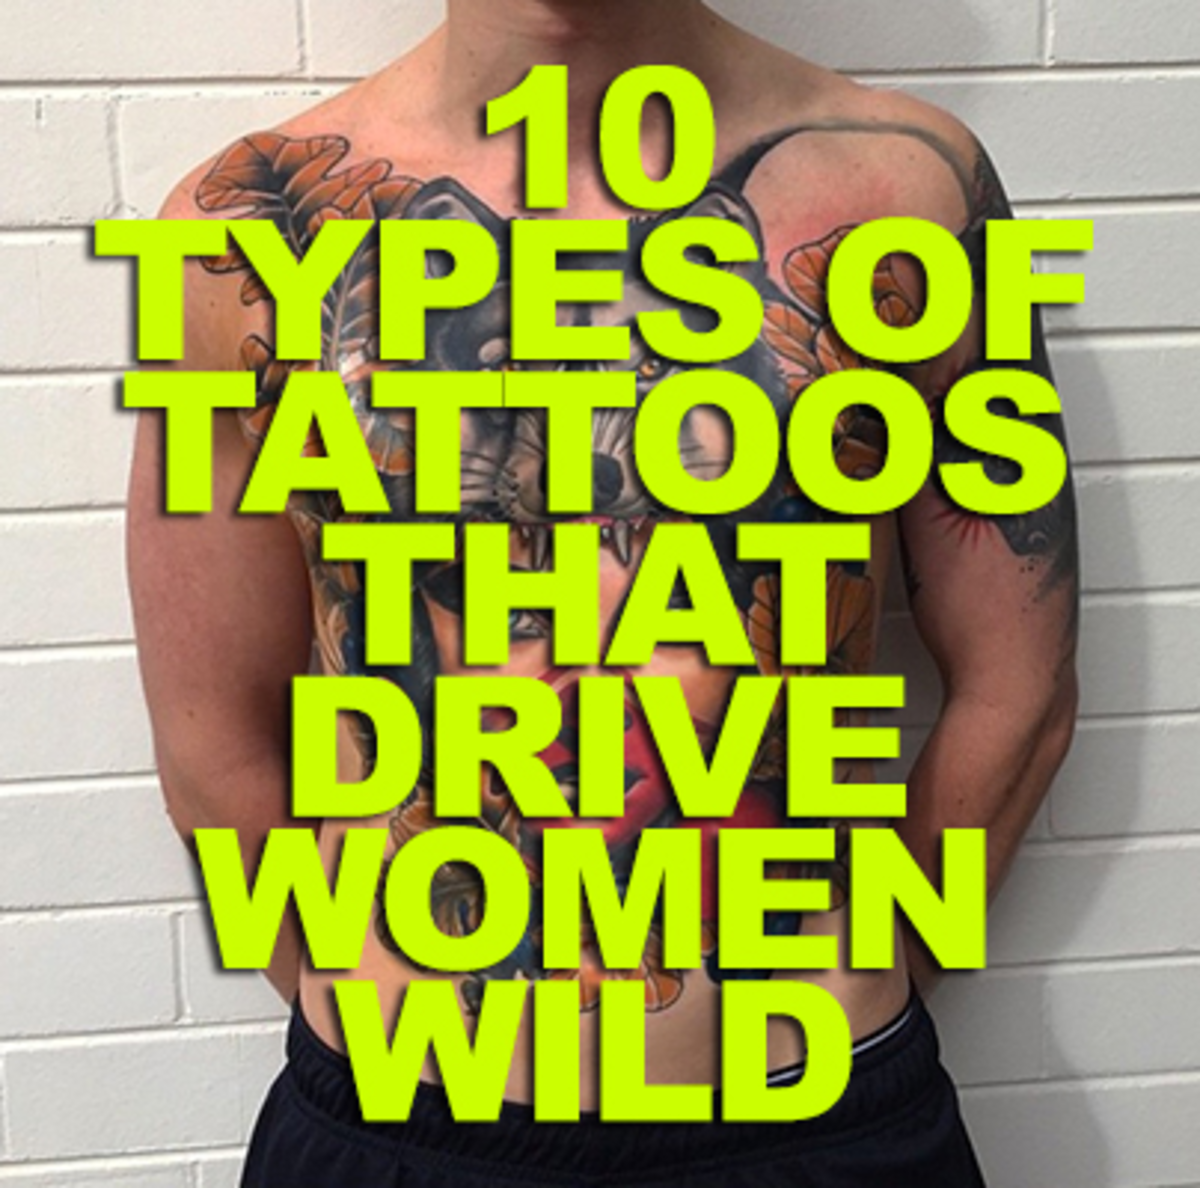 10 types of tattoos that drive women wild